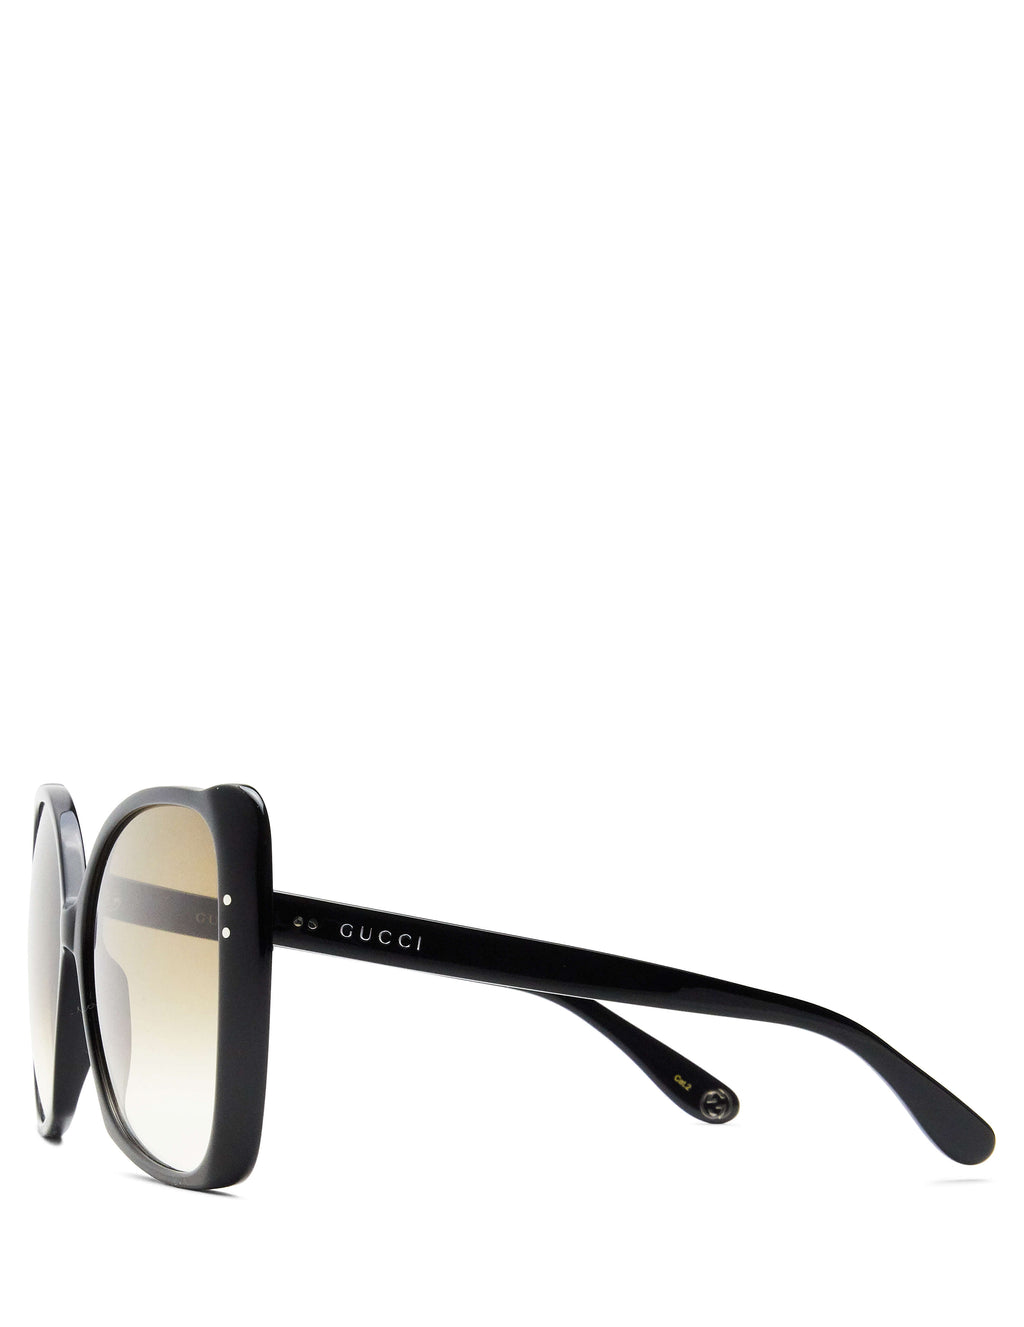 Gucci Eyewear Women's Giulio Fashion Black Oversize Square-Frame Sunglasses GG0471S001